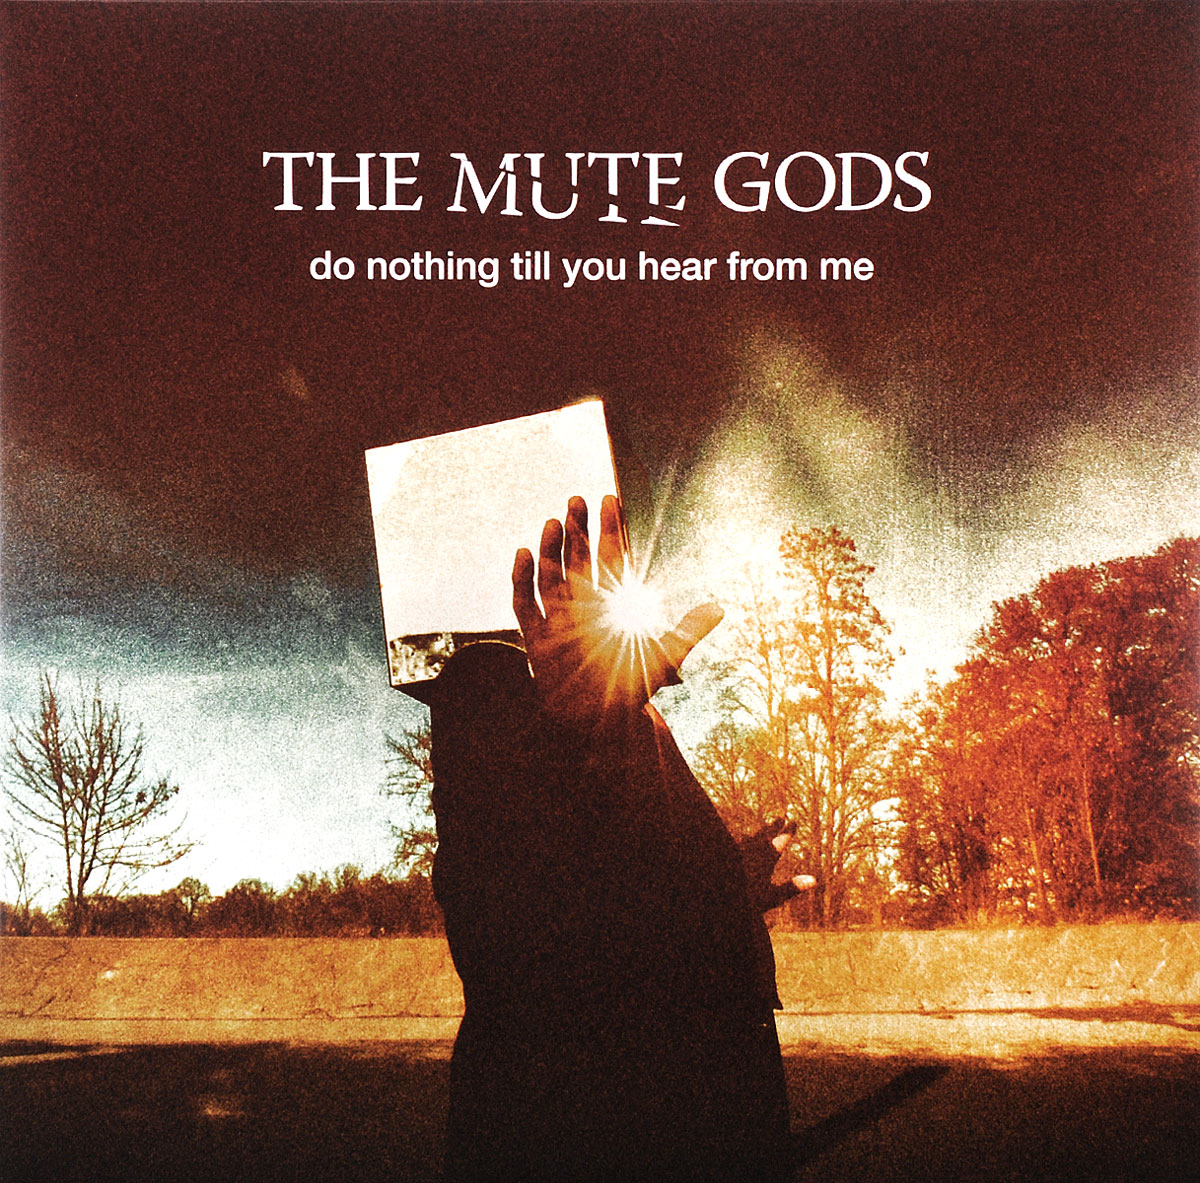 The Mute Gods The Mute Gods. Do Nothing Till You Hear From Me (2 LP) виниловая пластинка mute gods the do nothing till you hear from me 2lp cd